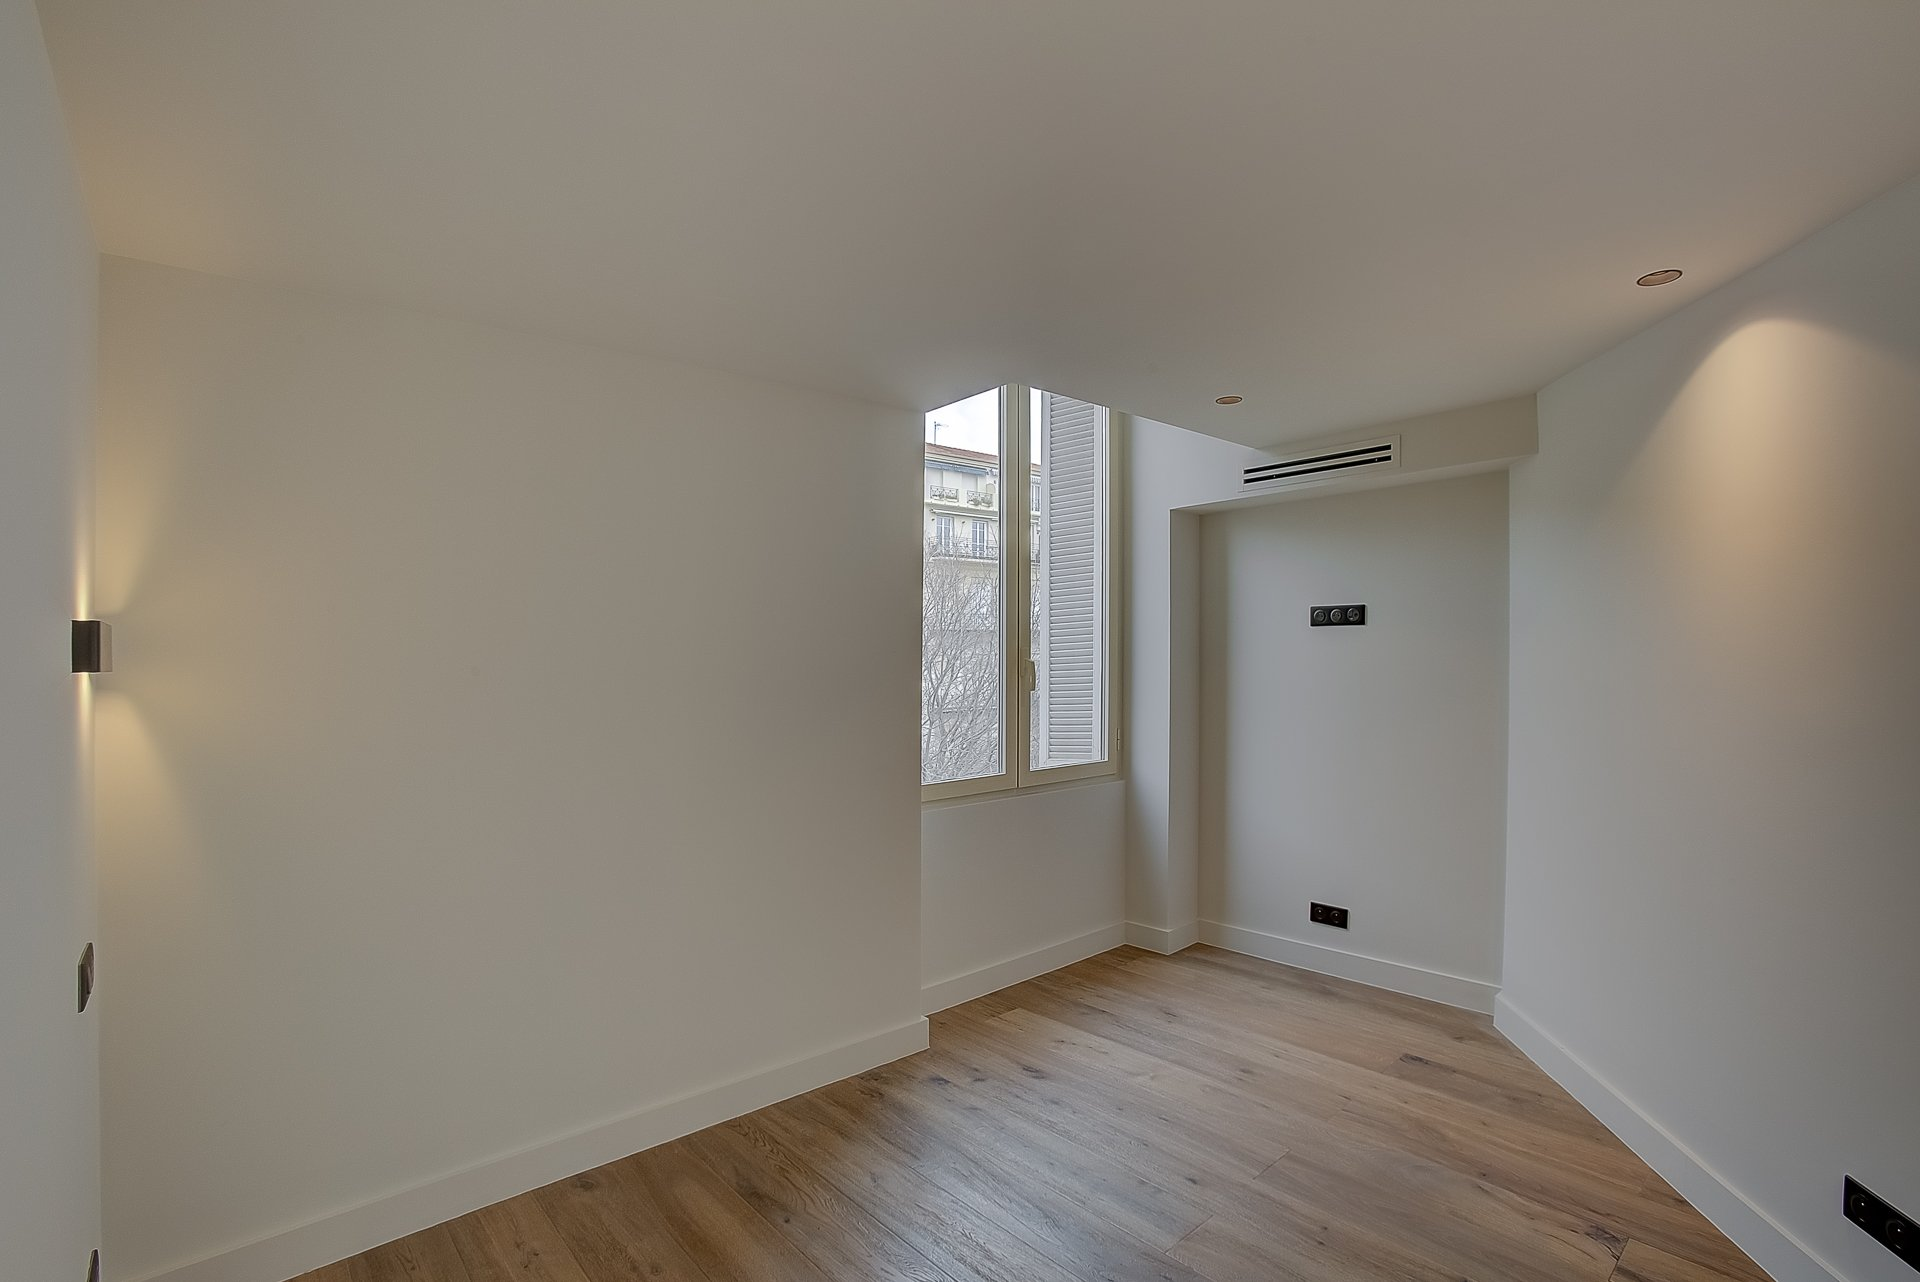 Nice Golden Square - One bedroom with mezzanine and balcony.